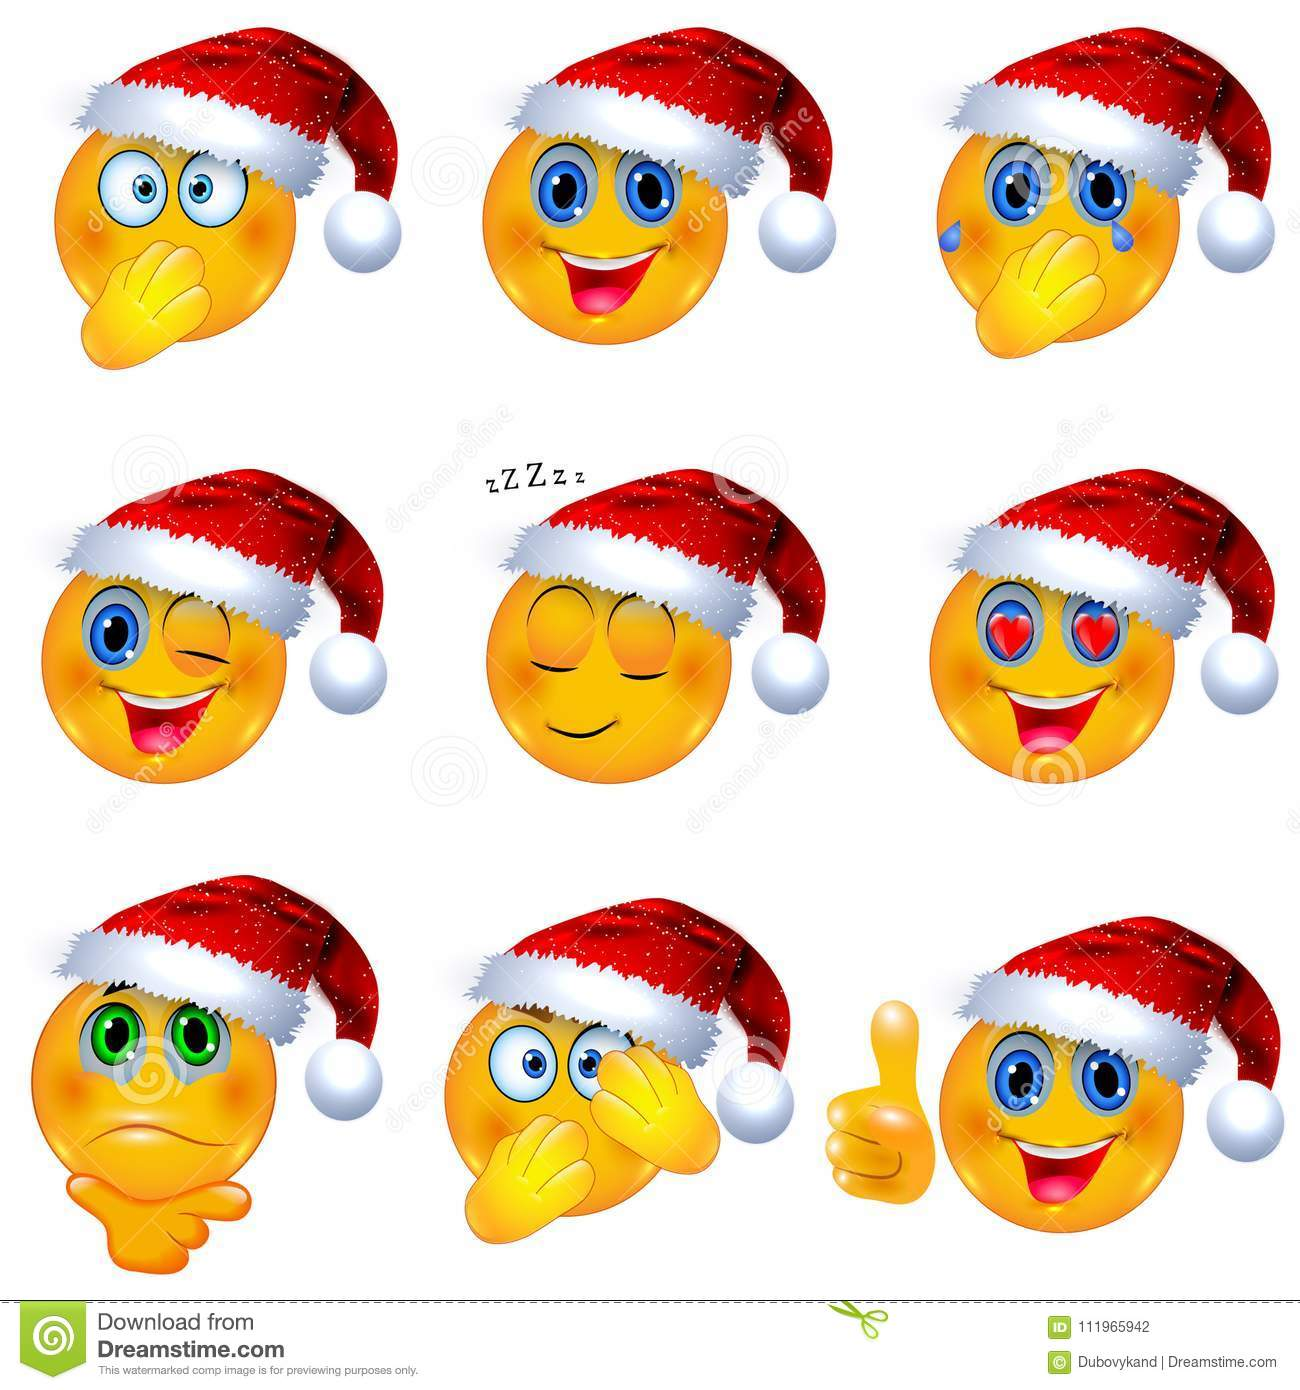 download yellow smiley faces with christmas santa hat on emoji vector illustration stock vector - Christmas Smiley Faces